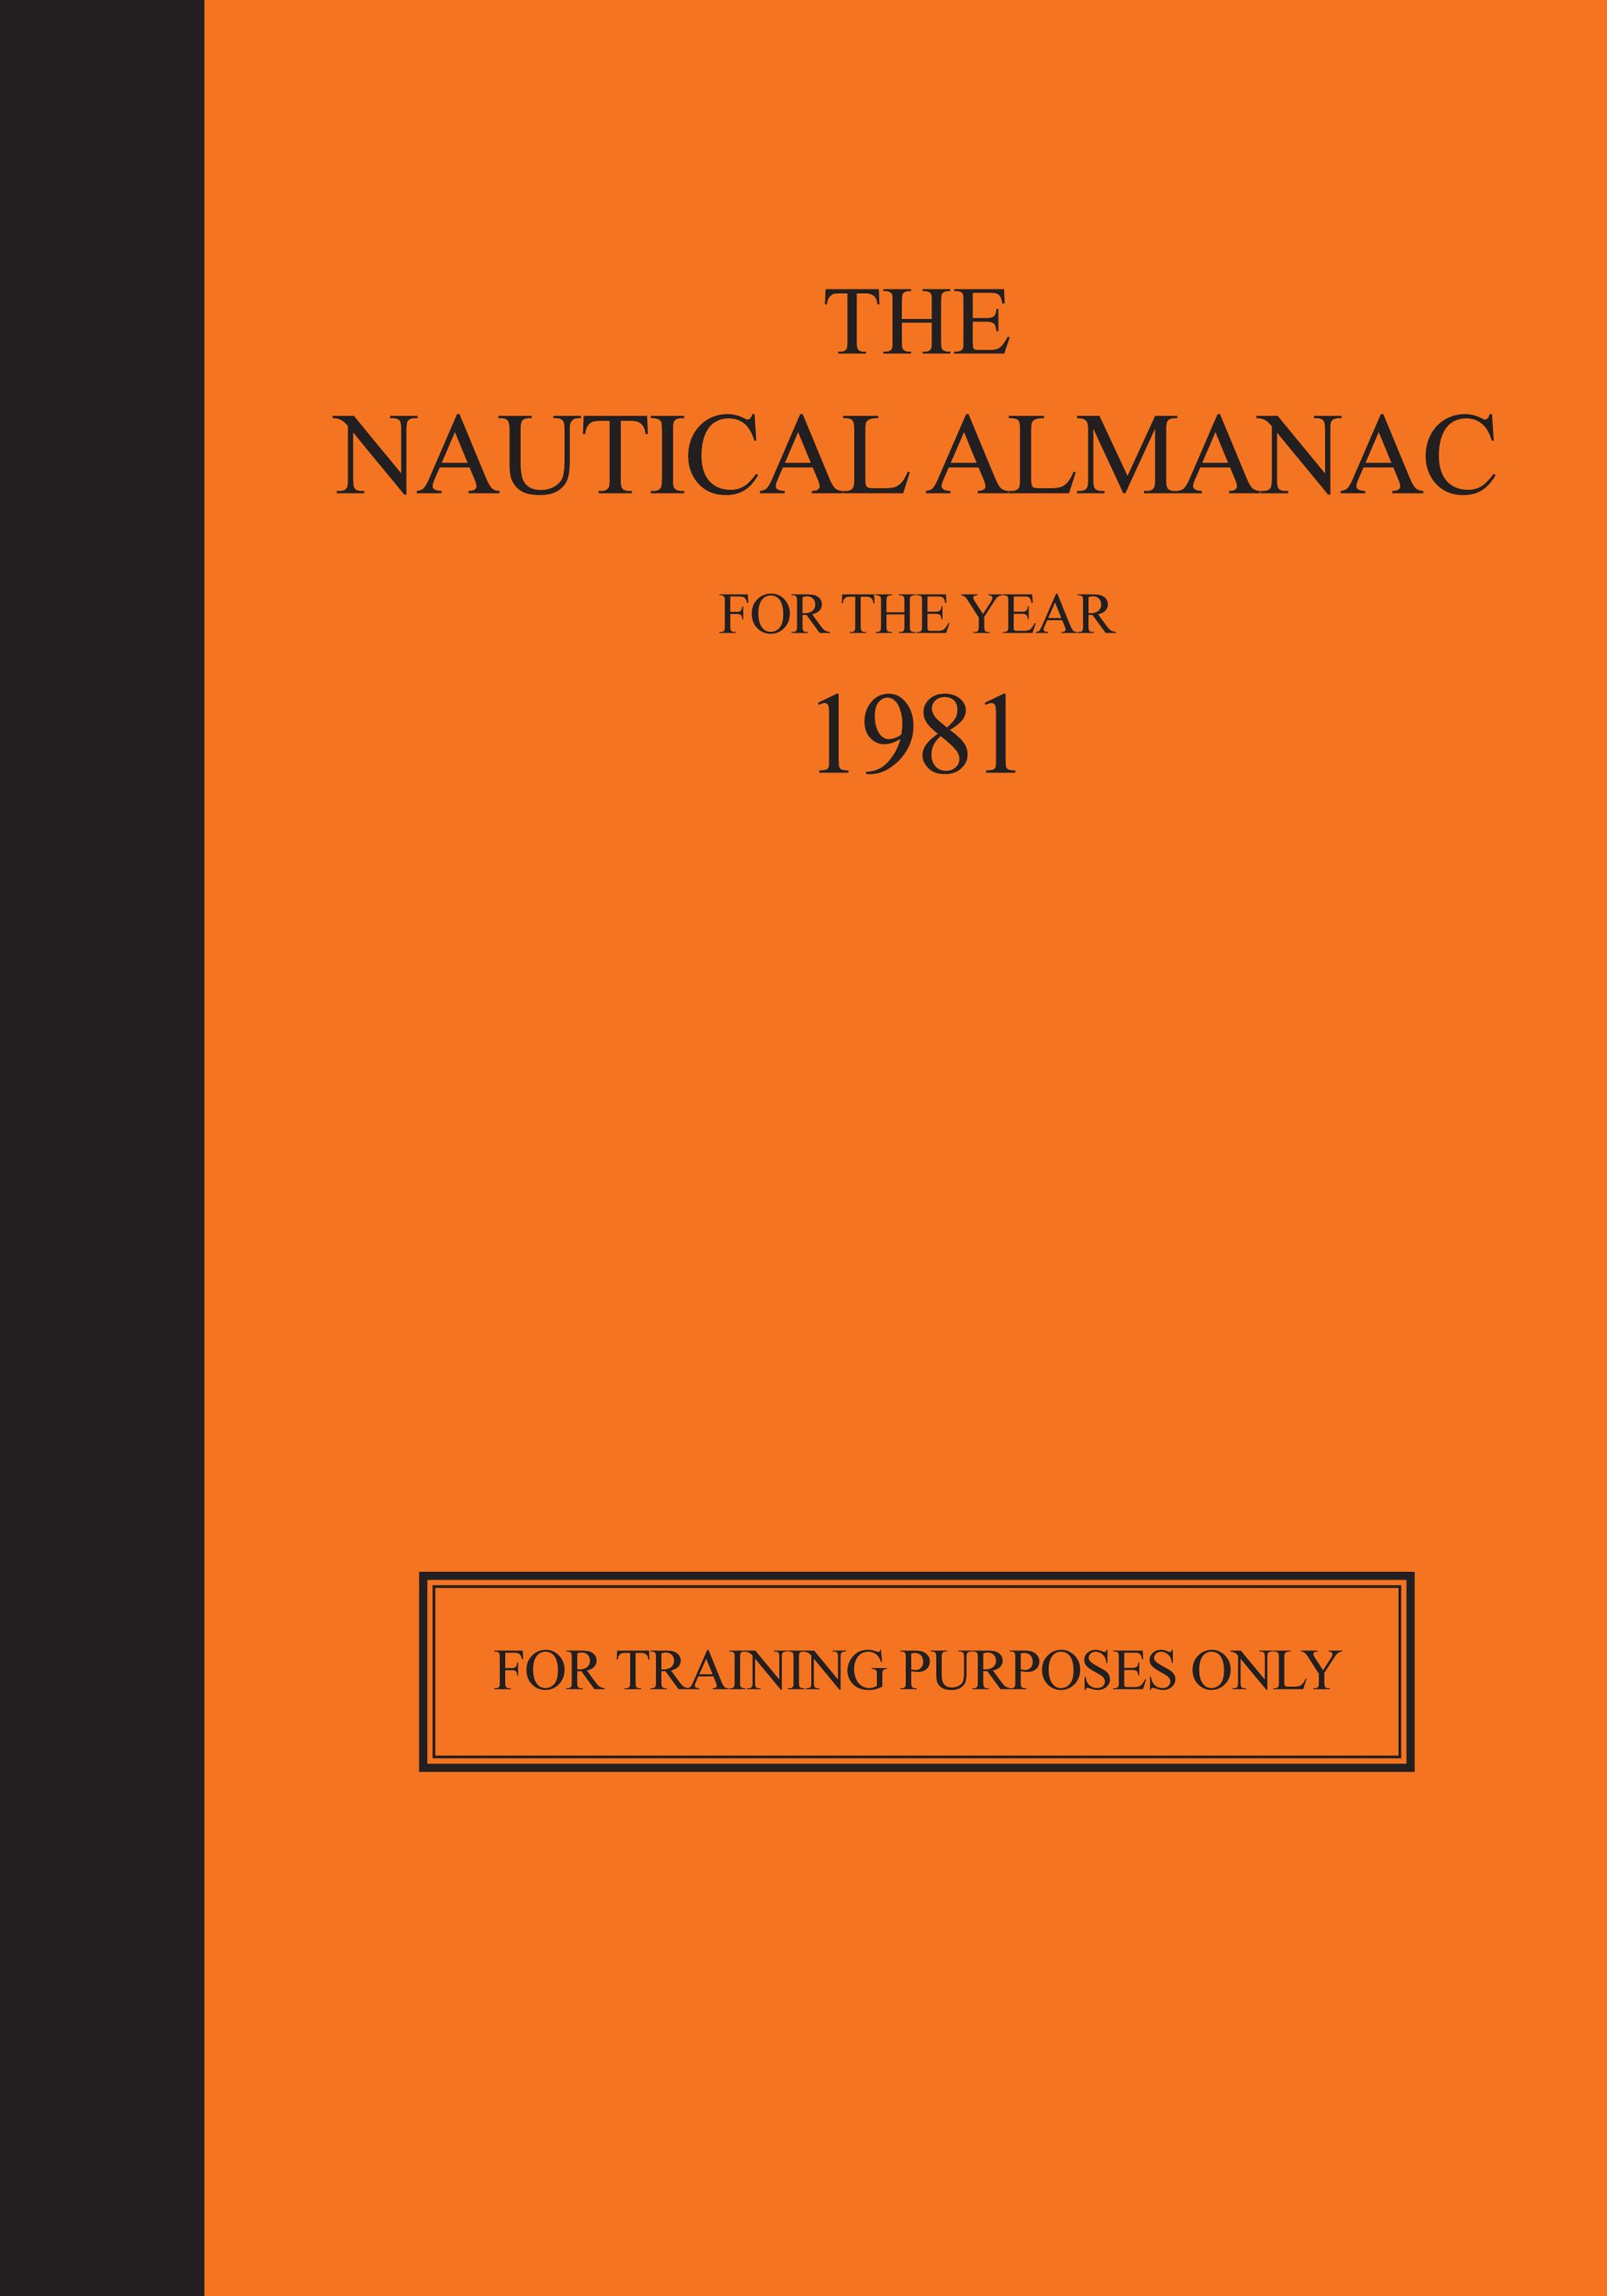 The Nautical Almanac 1981 - For Training Purposes Only EB2370003441178